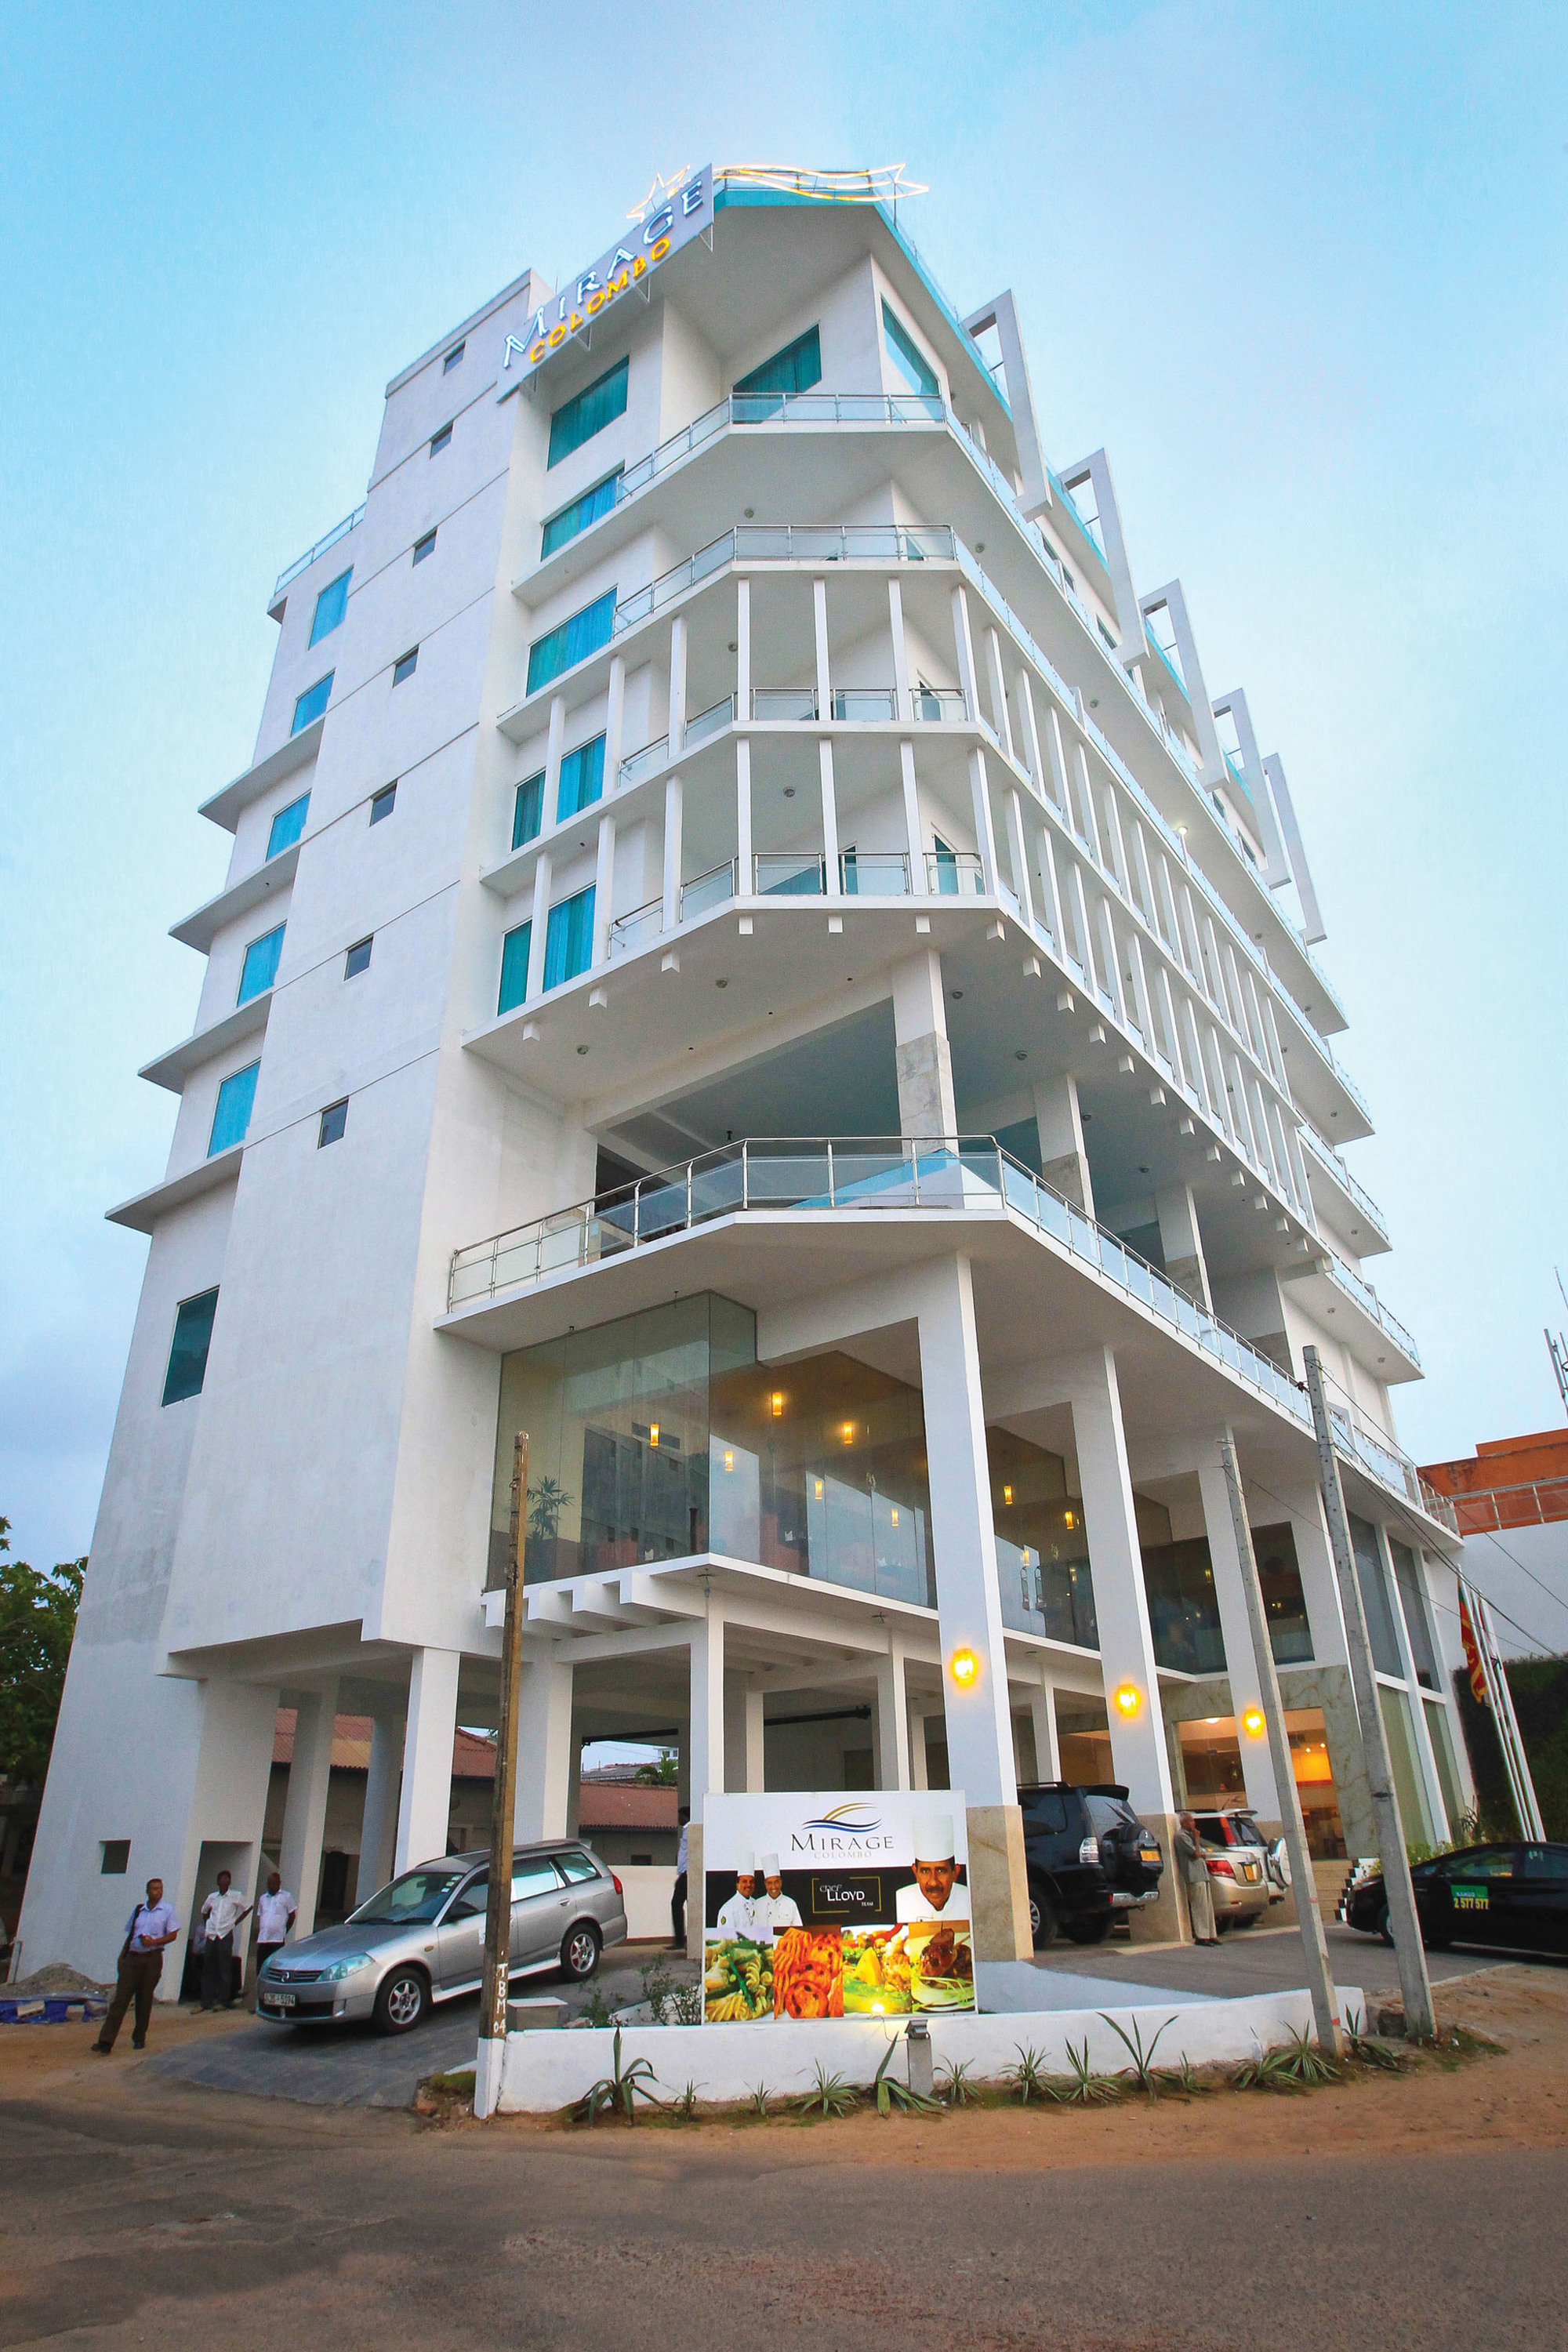 Mirage Colombo is a hotel in Colombo